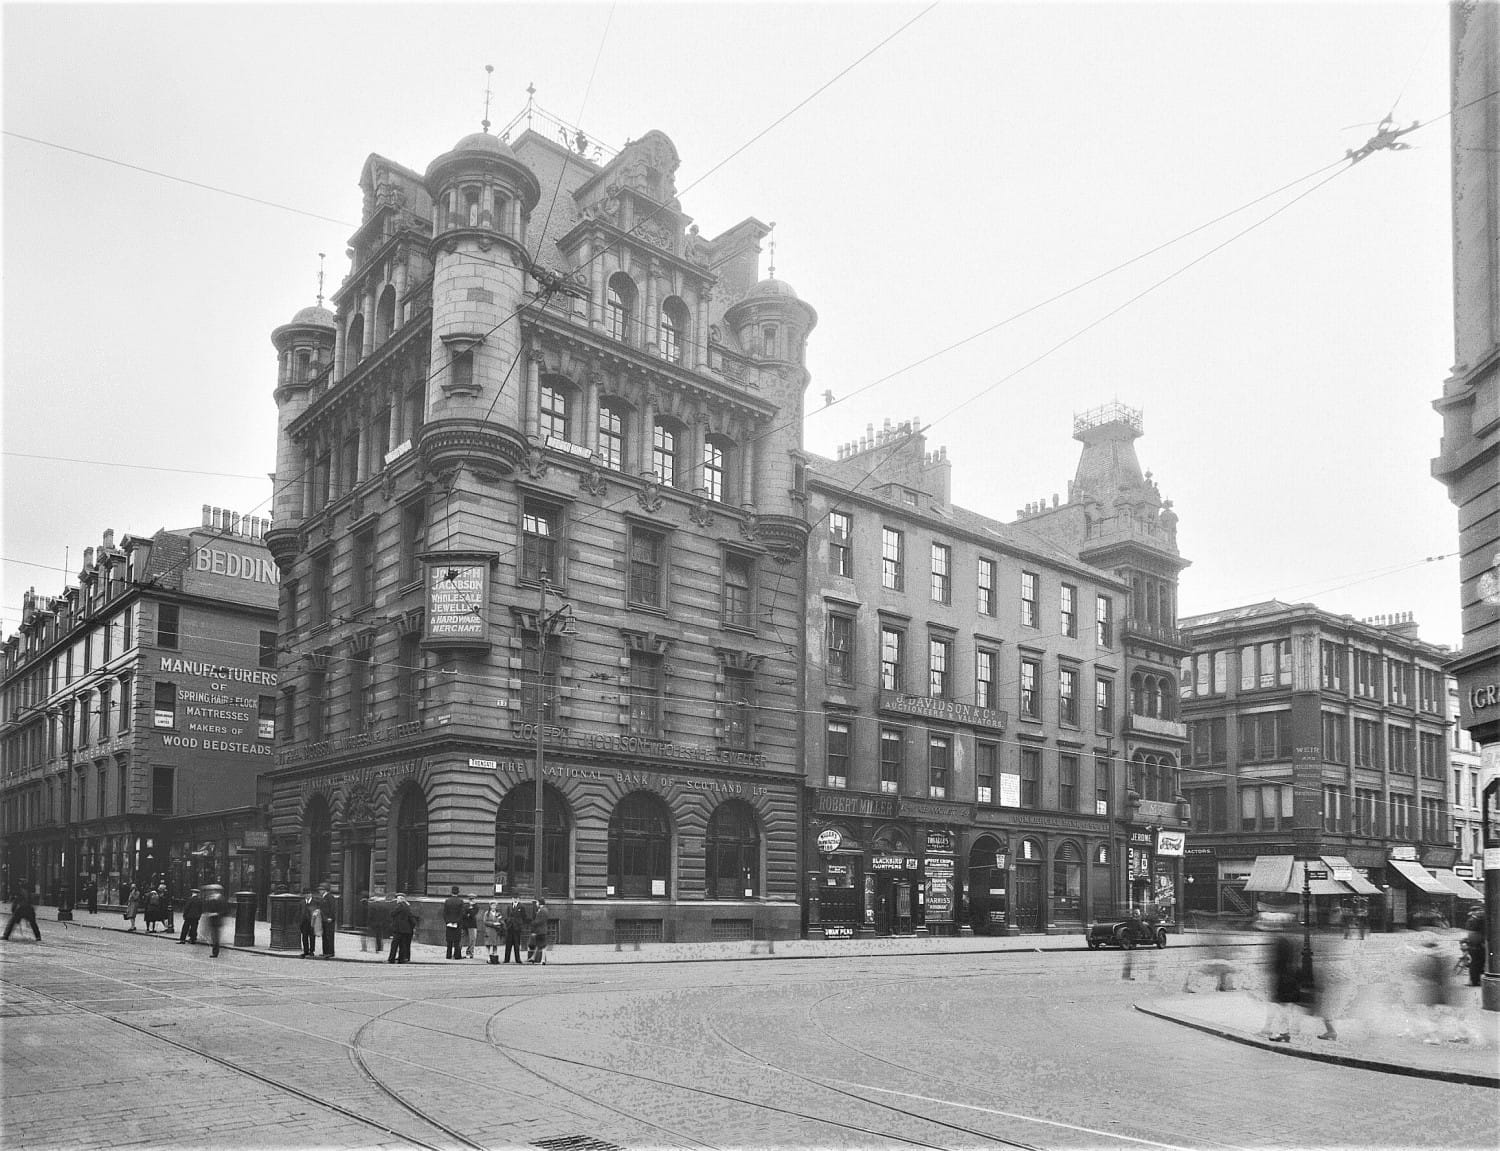 Trongate and Glassford Street in 1930 (Glasgow City Archives)